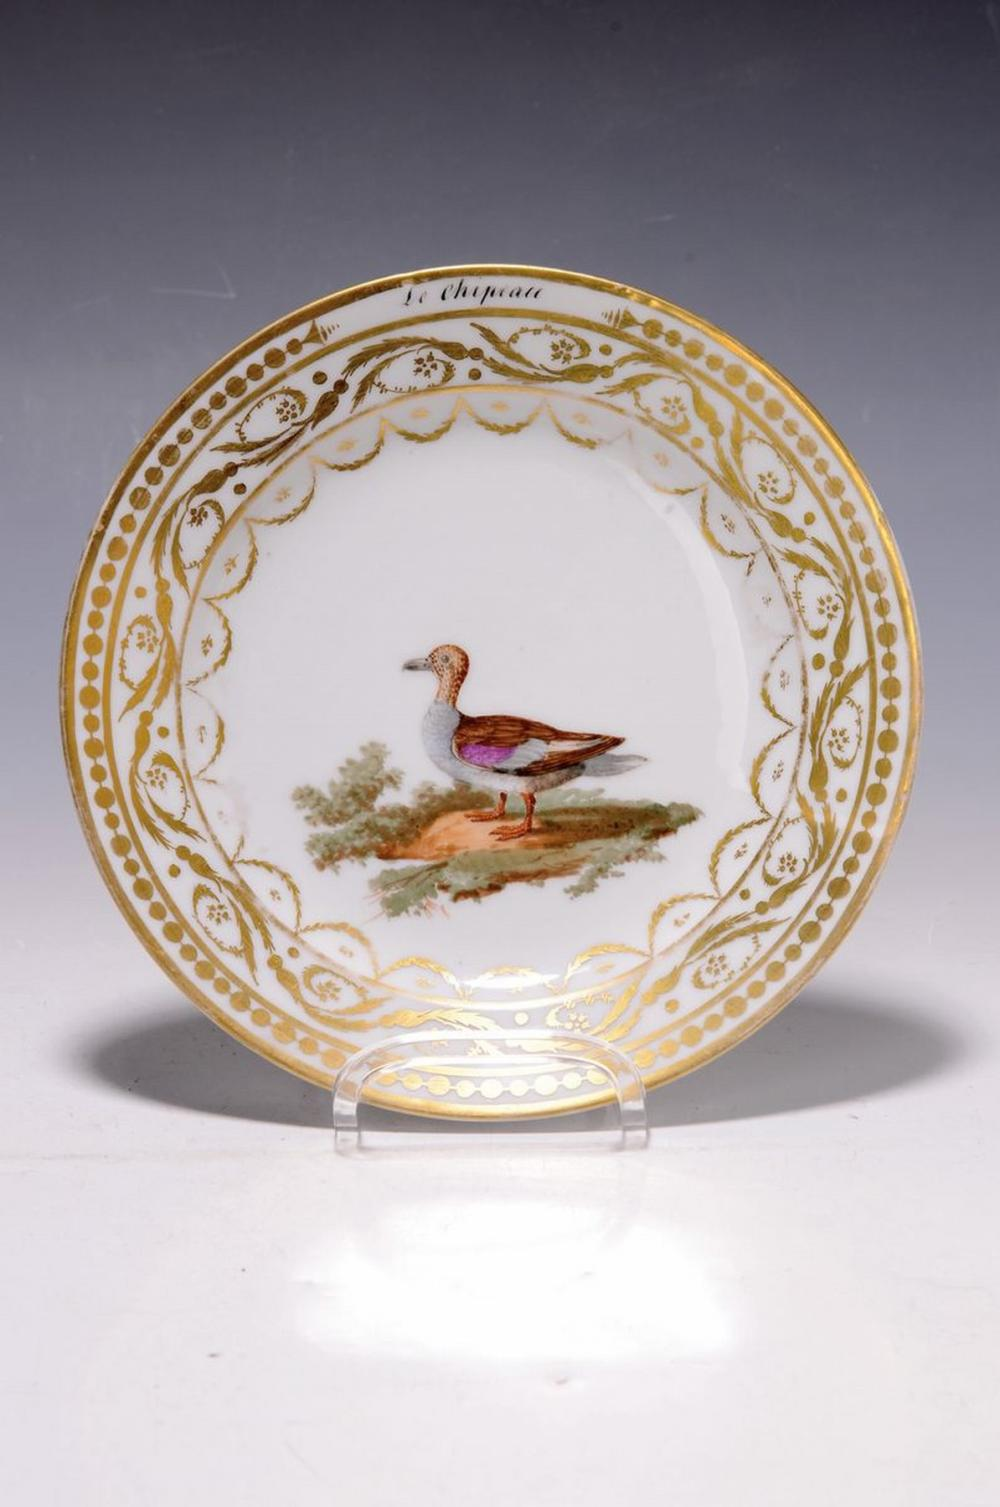 plate, France, around 1810, probably Paris, opulent gold